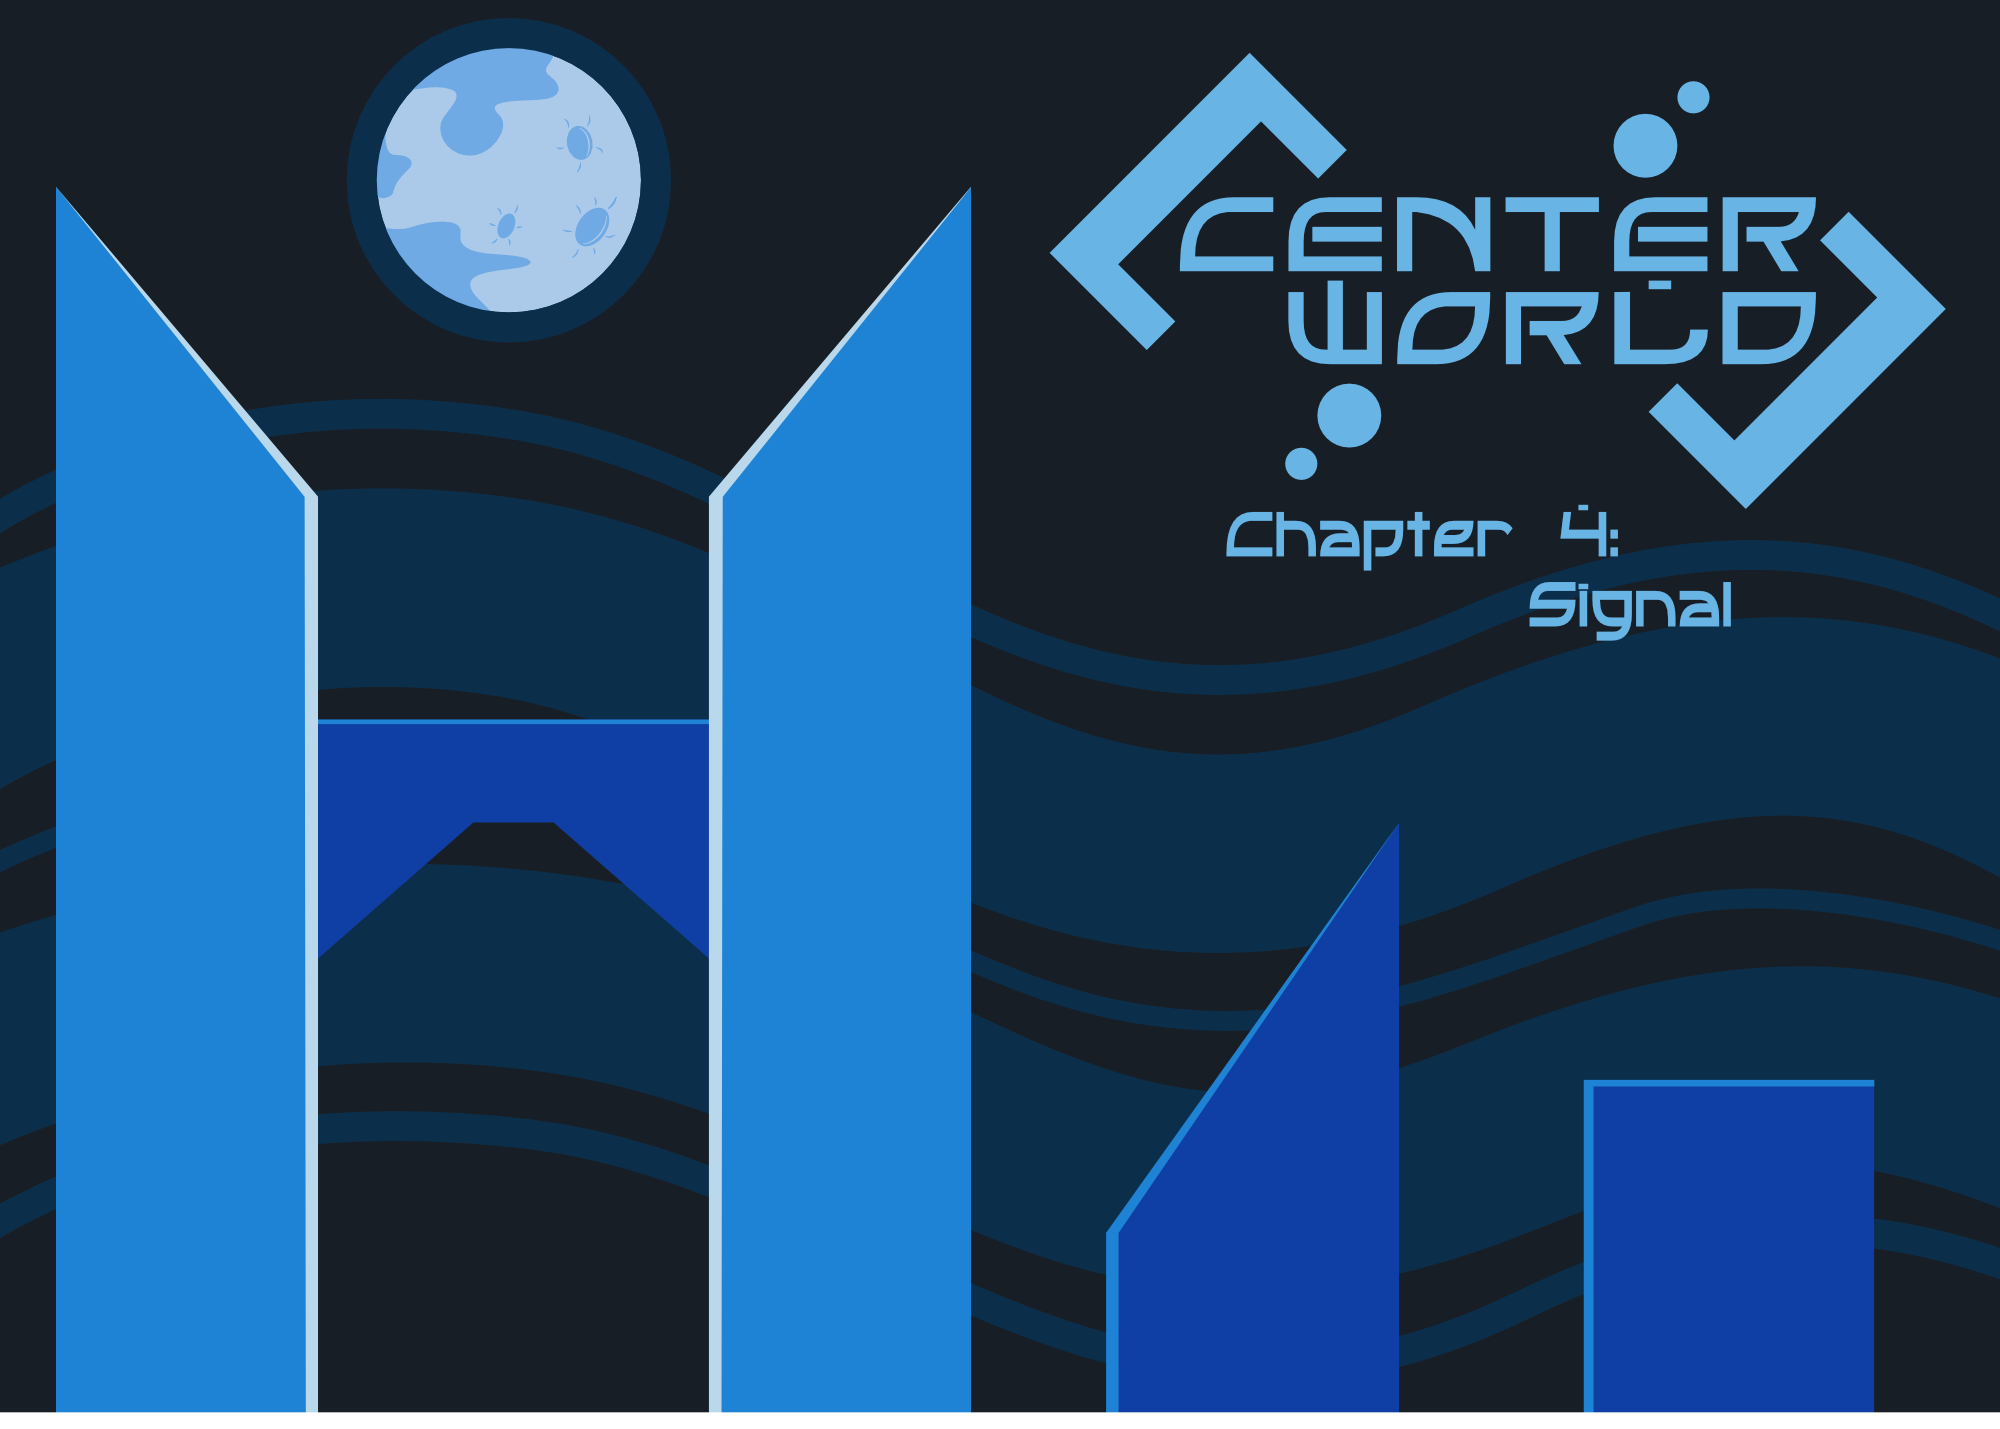 Center World 4.0